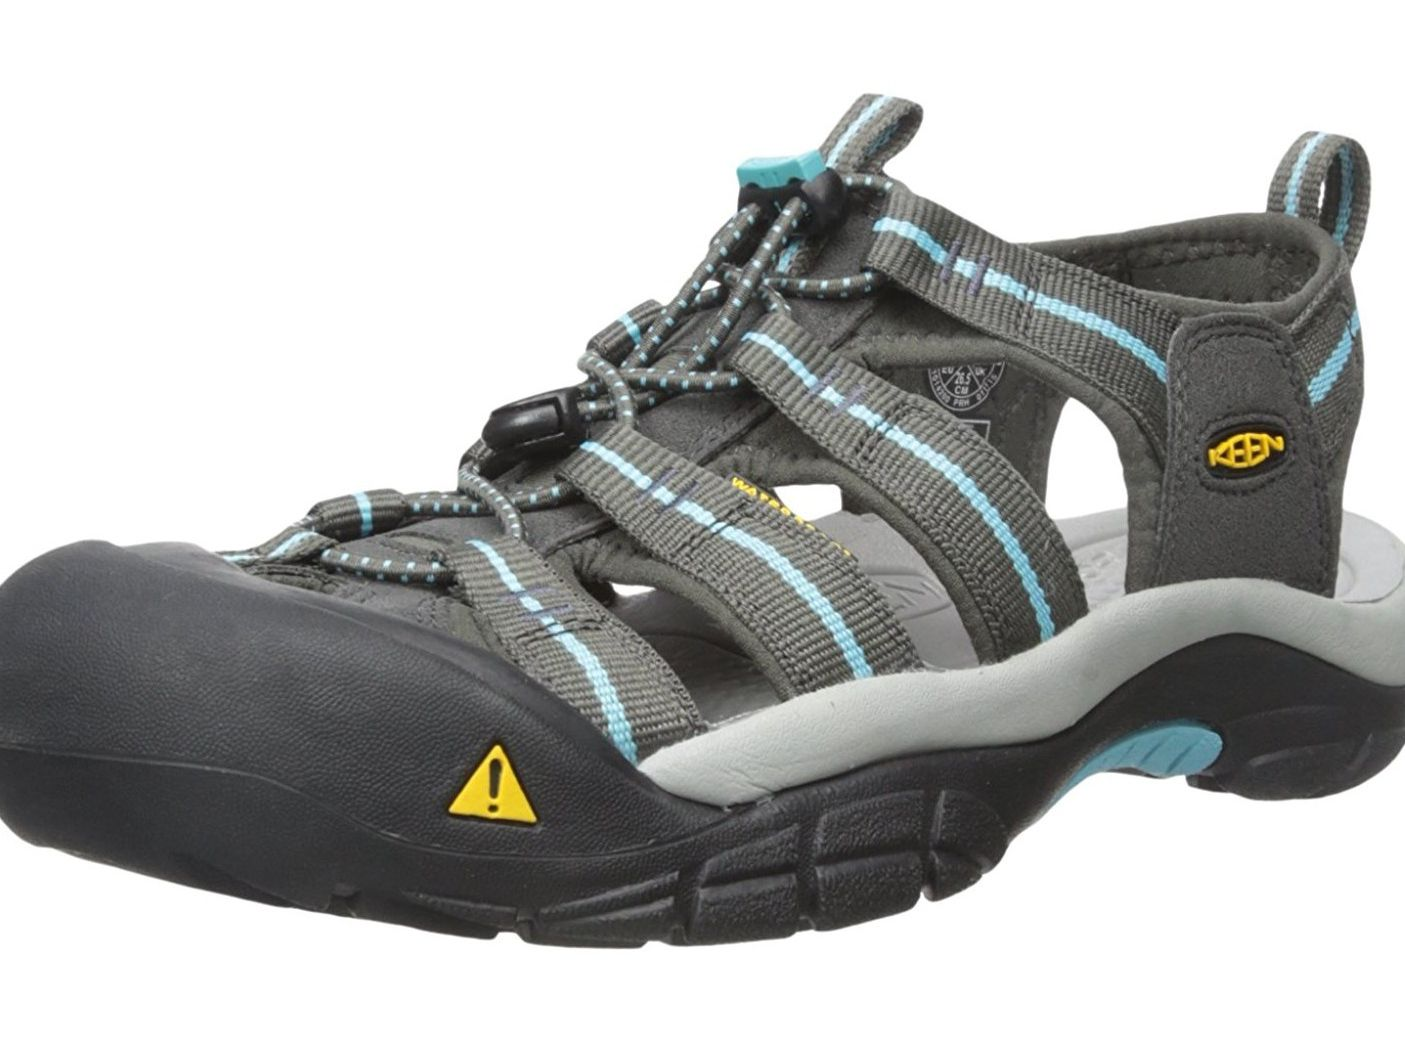 store best selling authorized site The 9 Best Walking Sandals of 2020